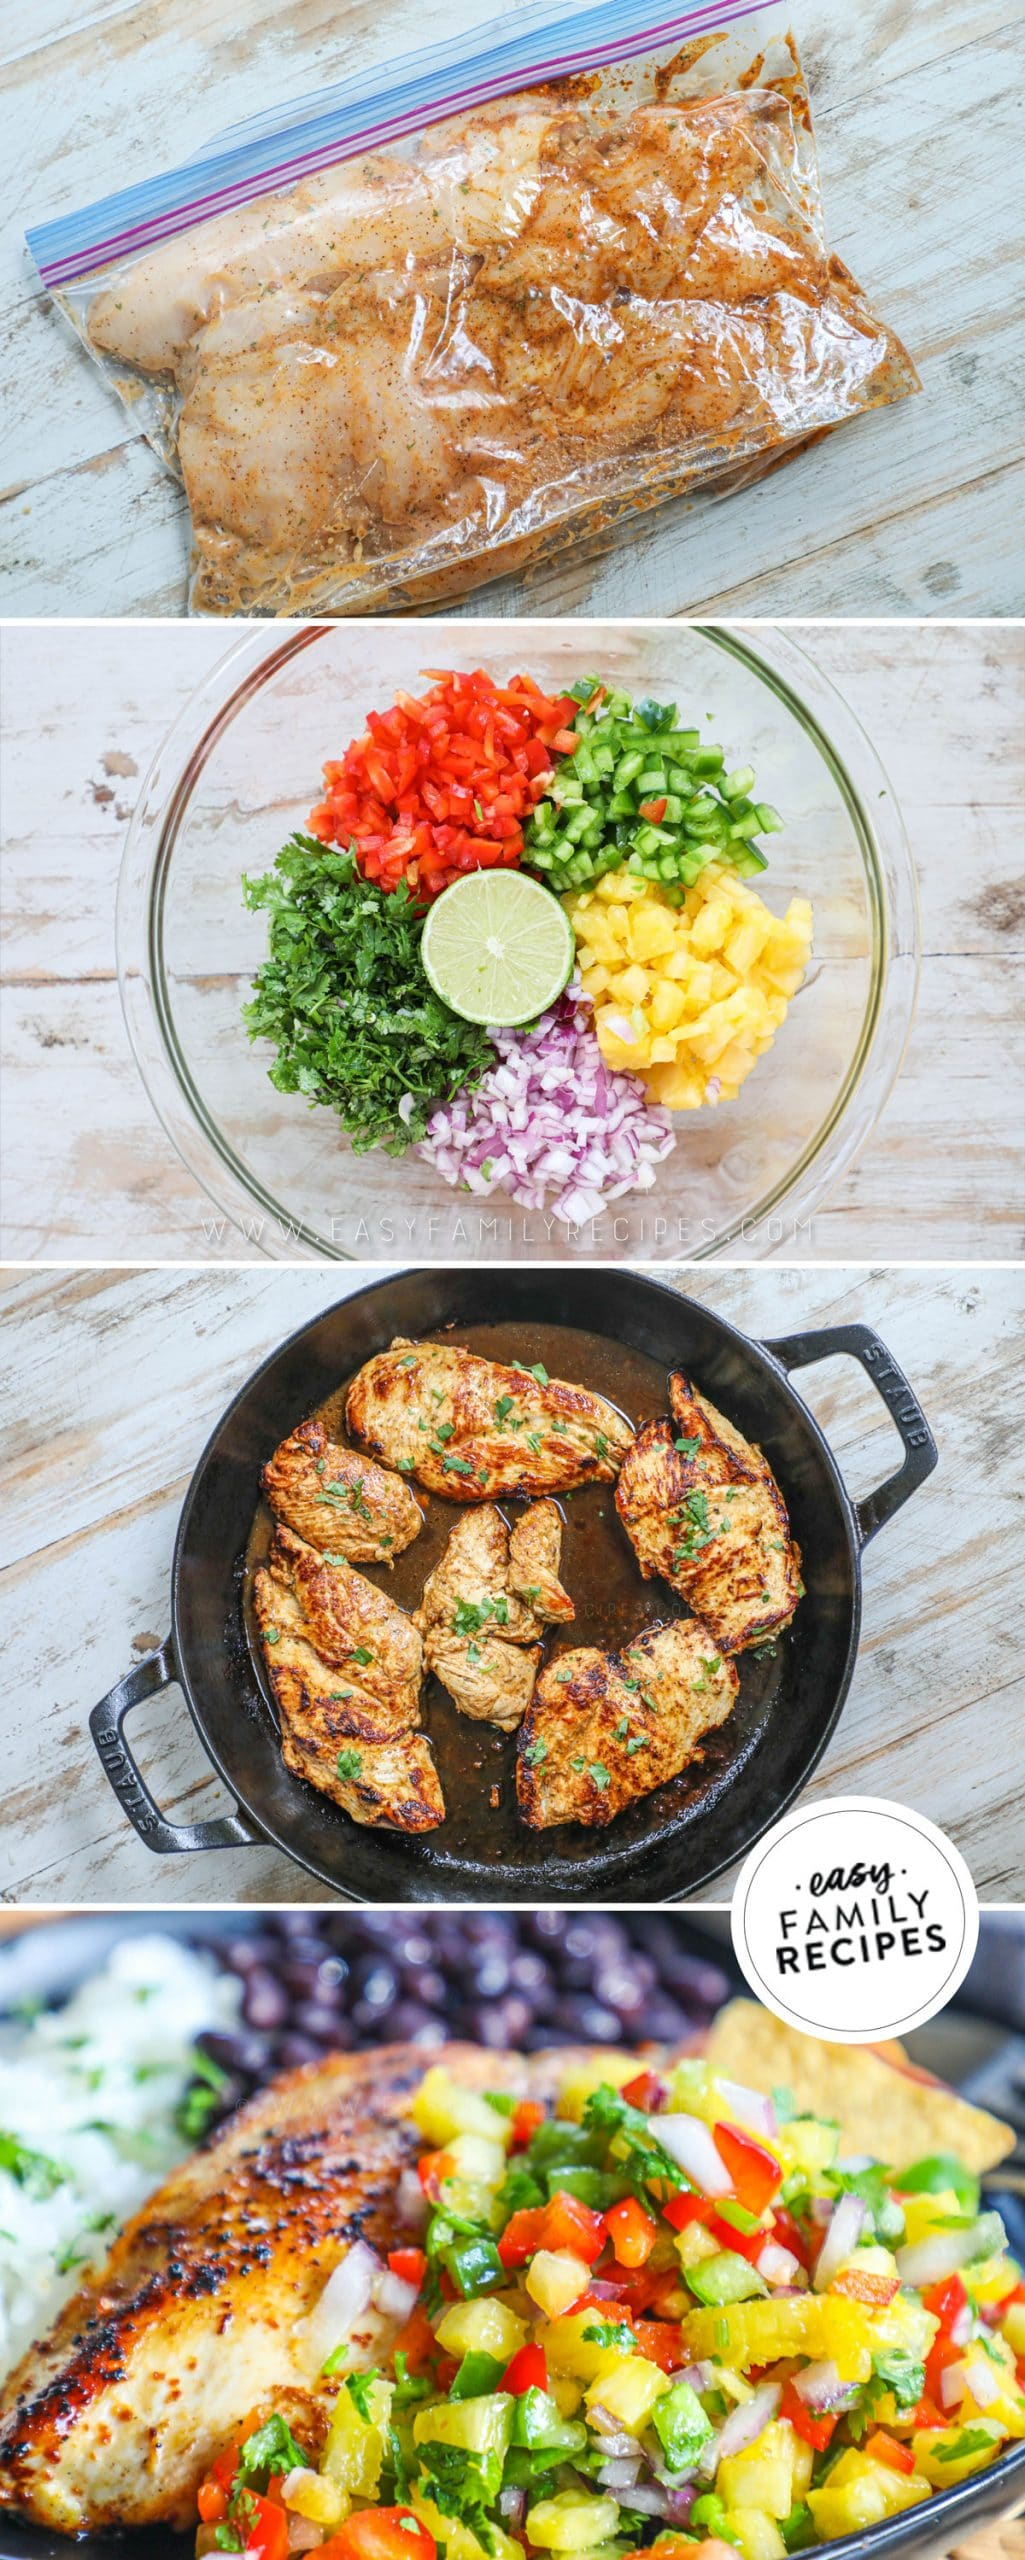 Process photos for How to make pineapple salsa chicken- 1. Marinate the chicken breast. 2. Make pineapple salsa. 3. Cook chicken breast in skillet. 4. Serve chicken with a scoop of pineapple salsa on top.